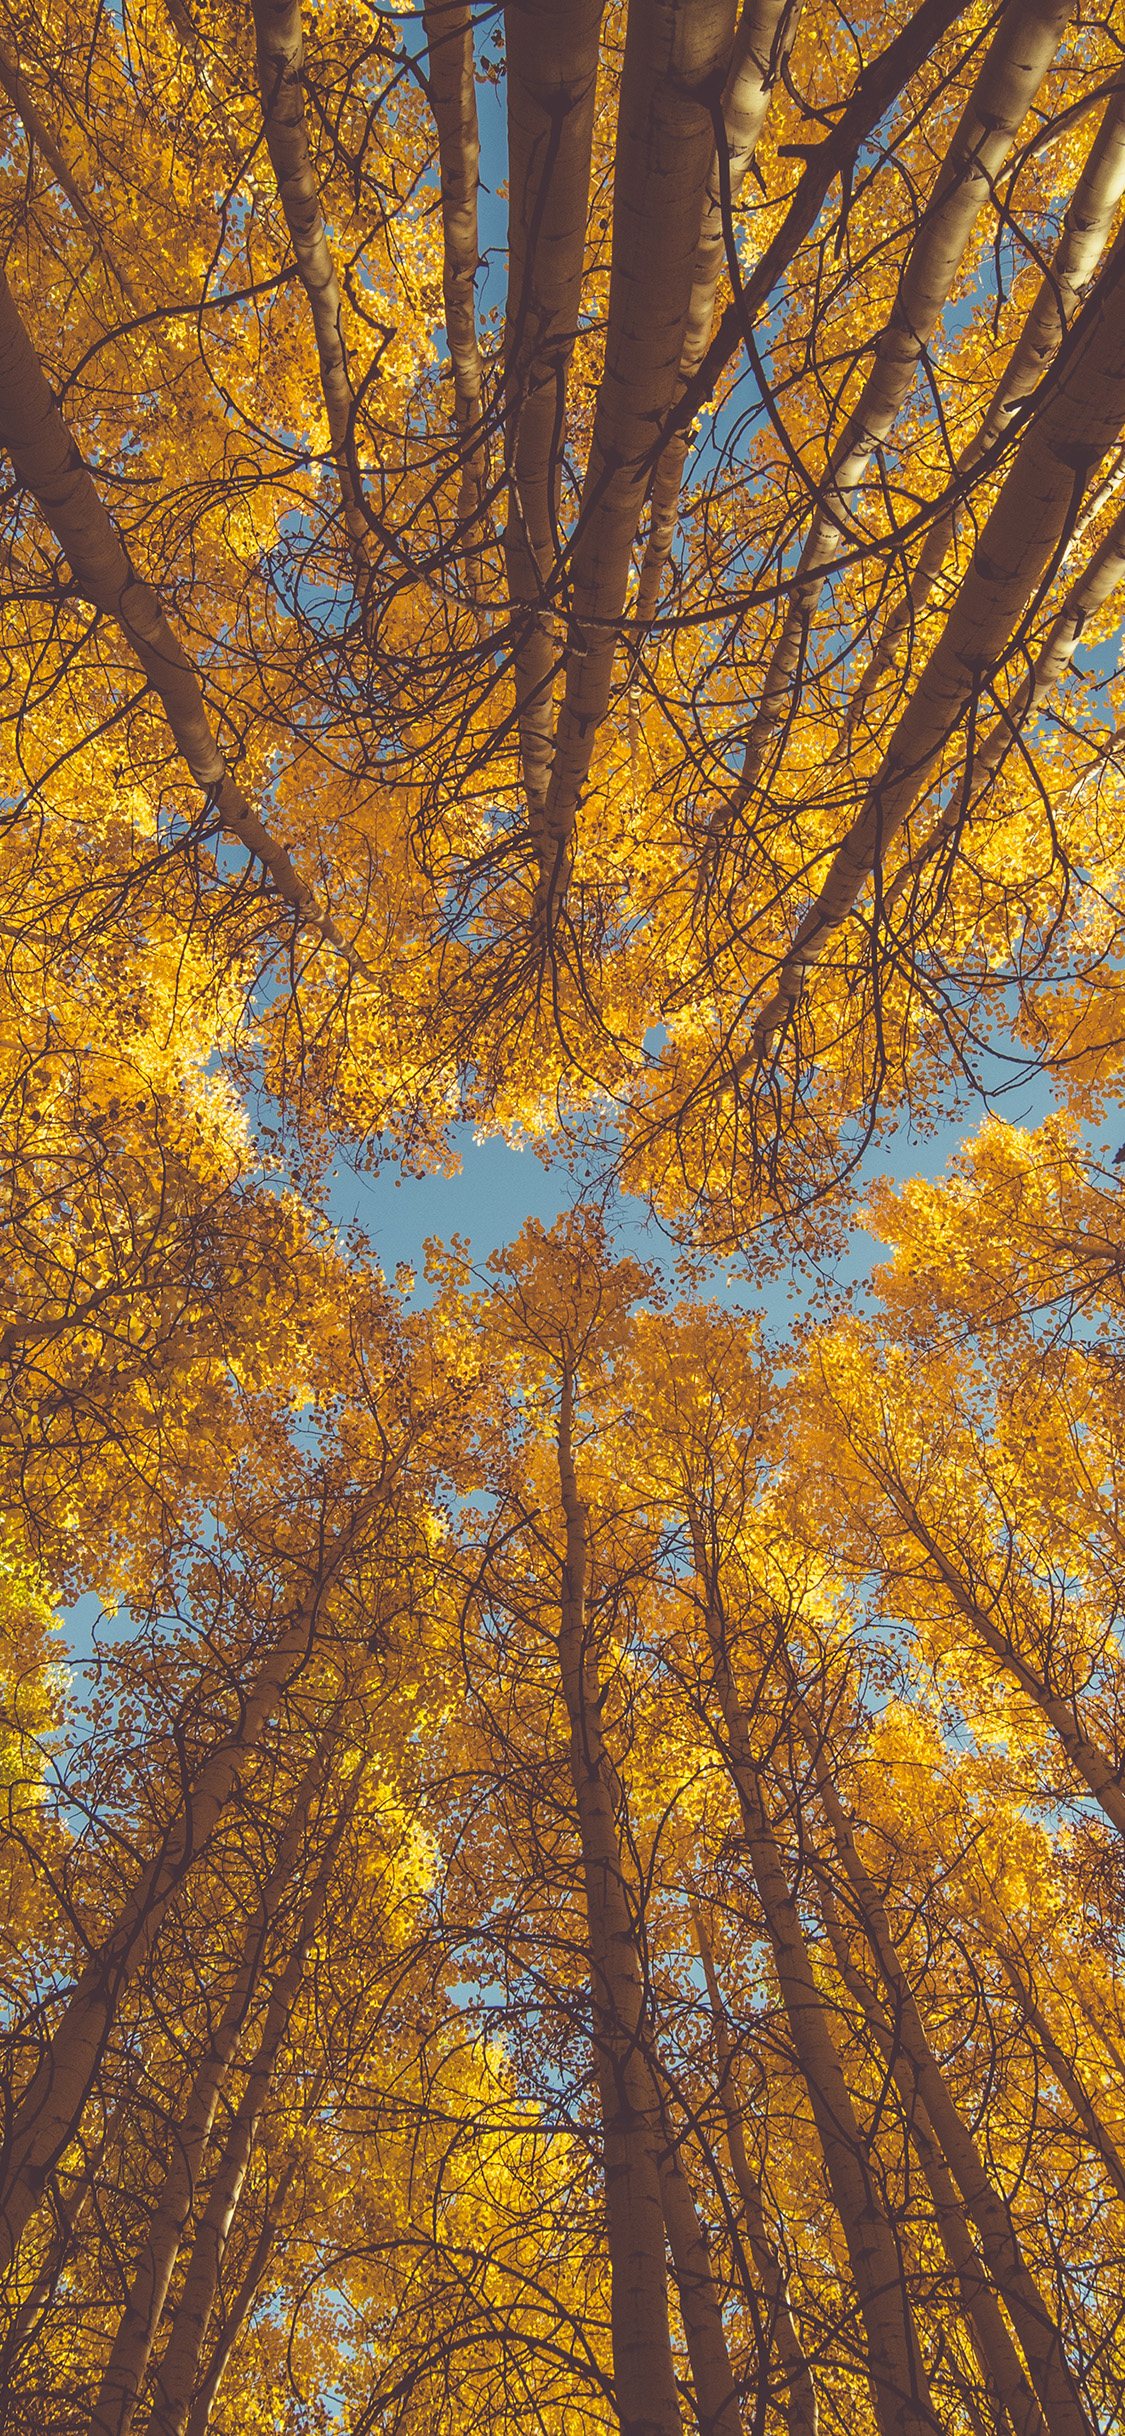 Iphone11papers Com Iphone11 Wallpaper Oe84 Nature Fall Tree Autumn